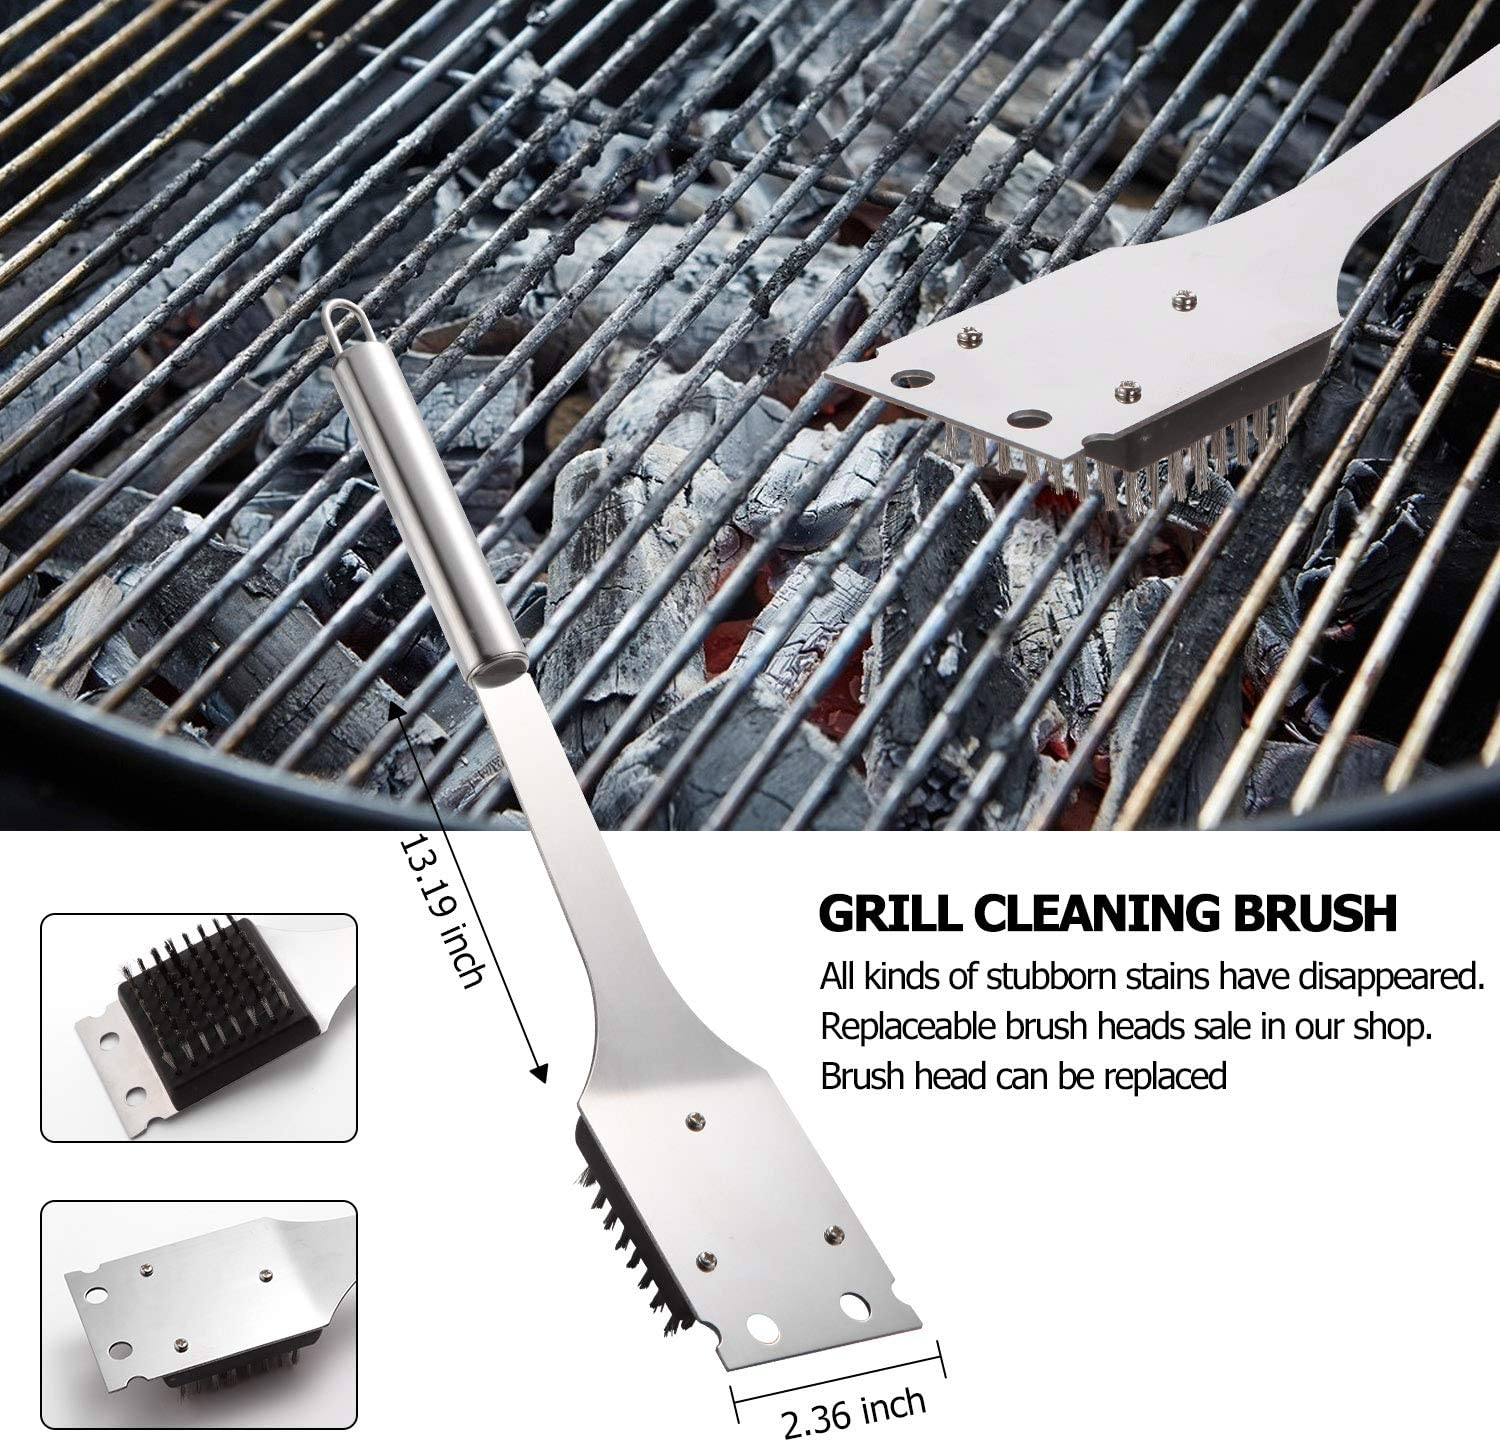 Aladom Grill Cleaning Brush Replacement Head,3PCS BBQ Extra Brush Head,3 Replacement Wire Brush Heads